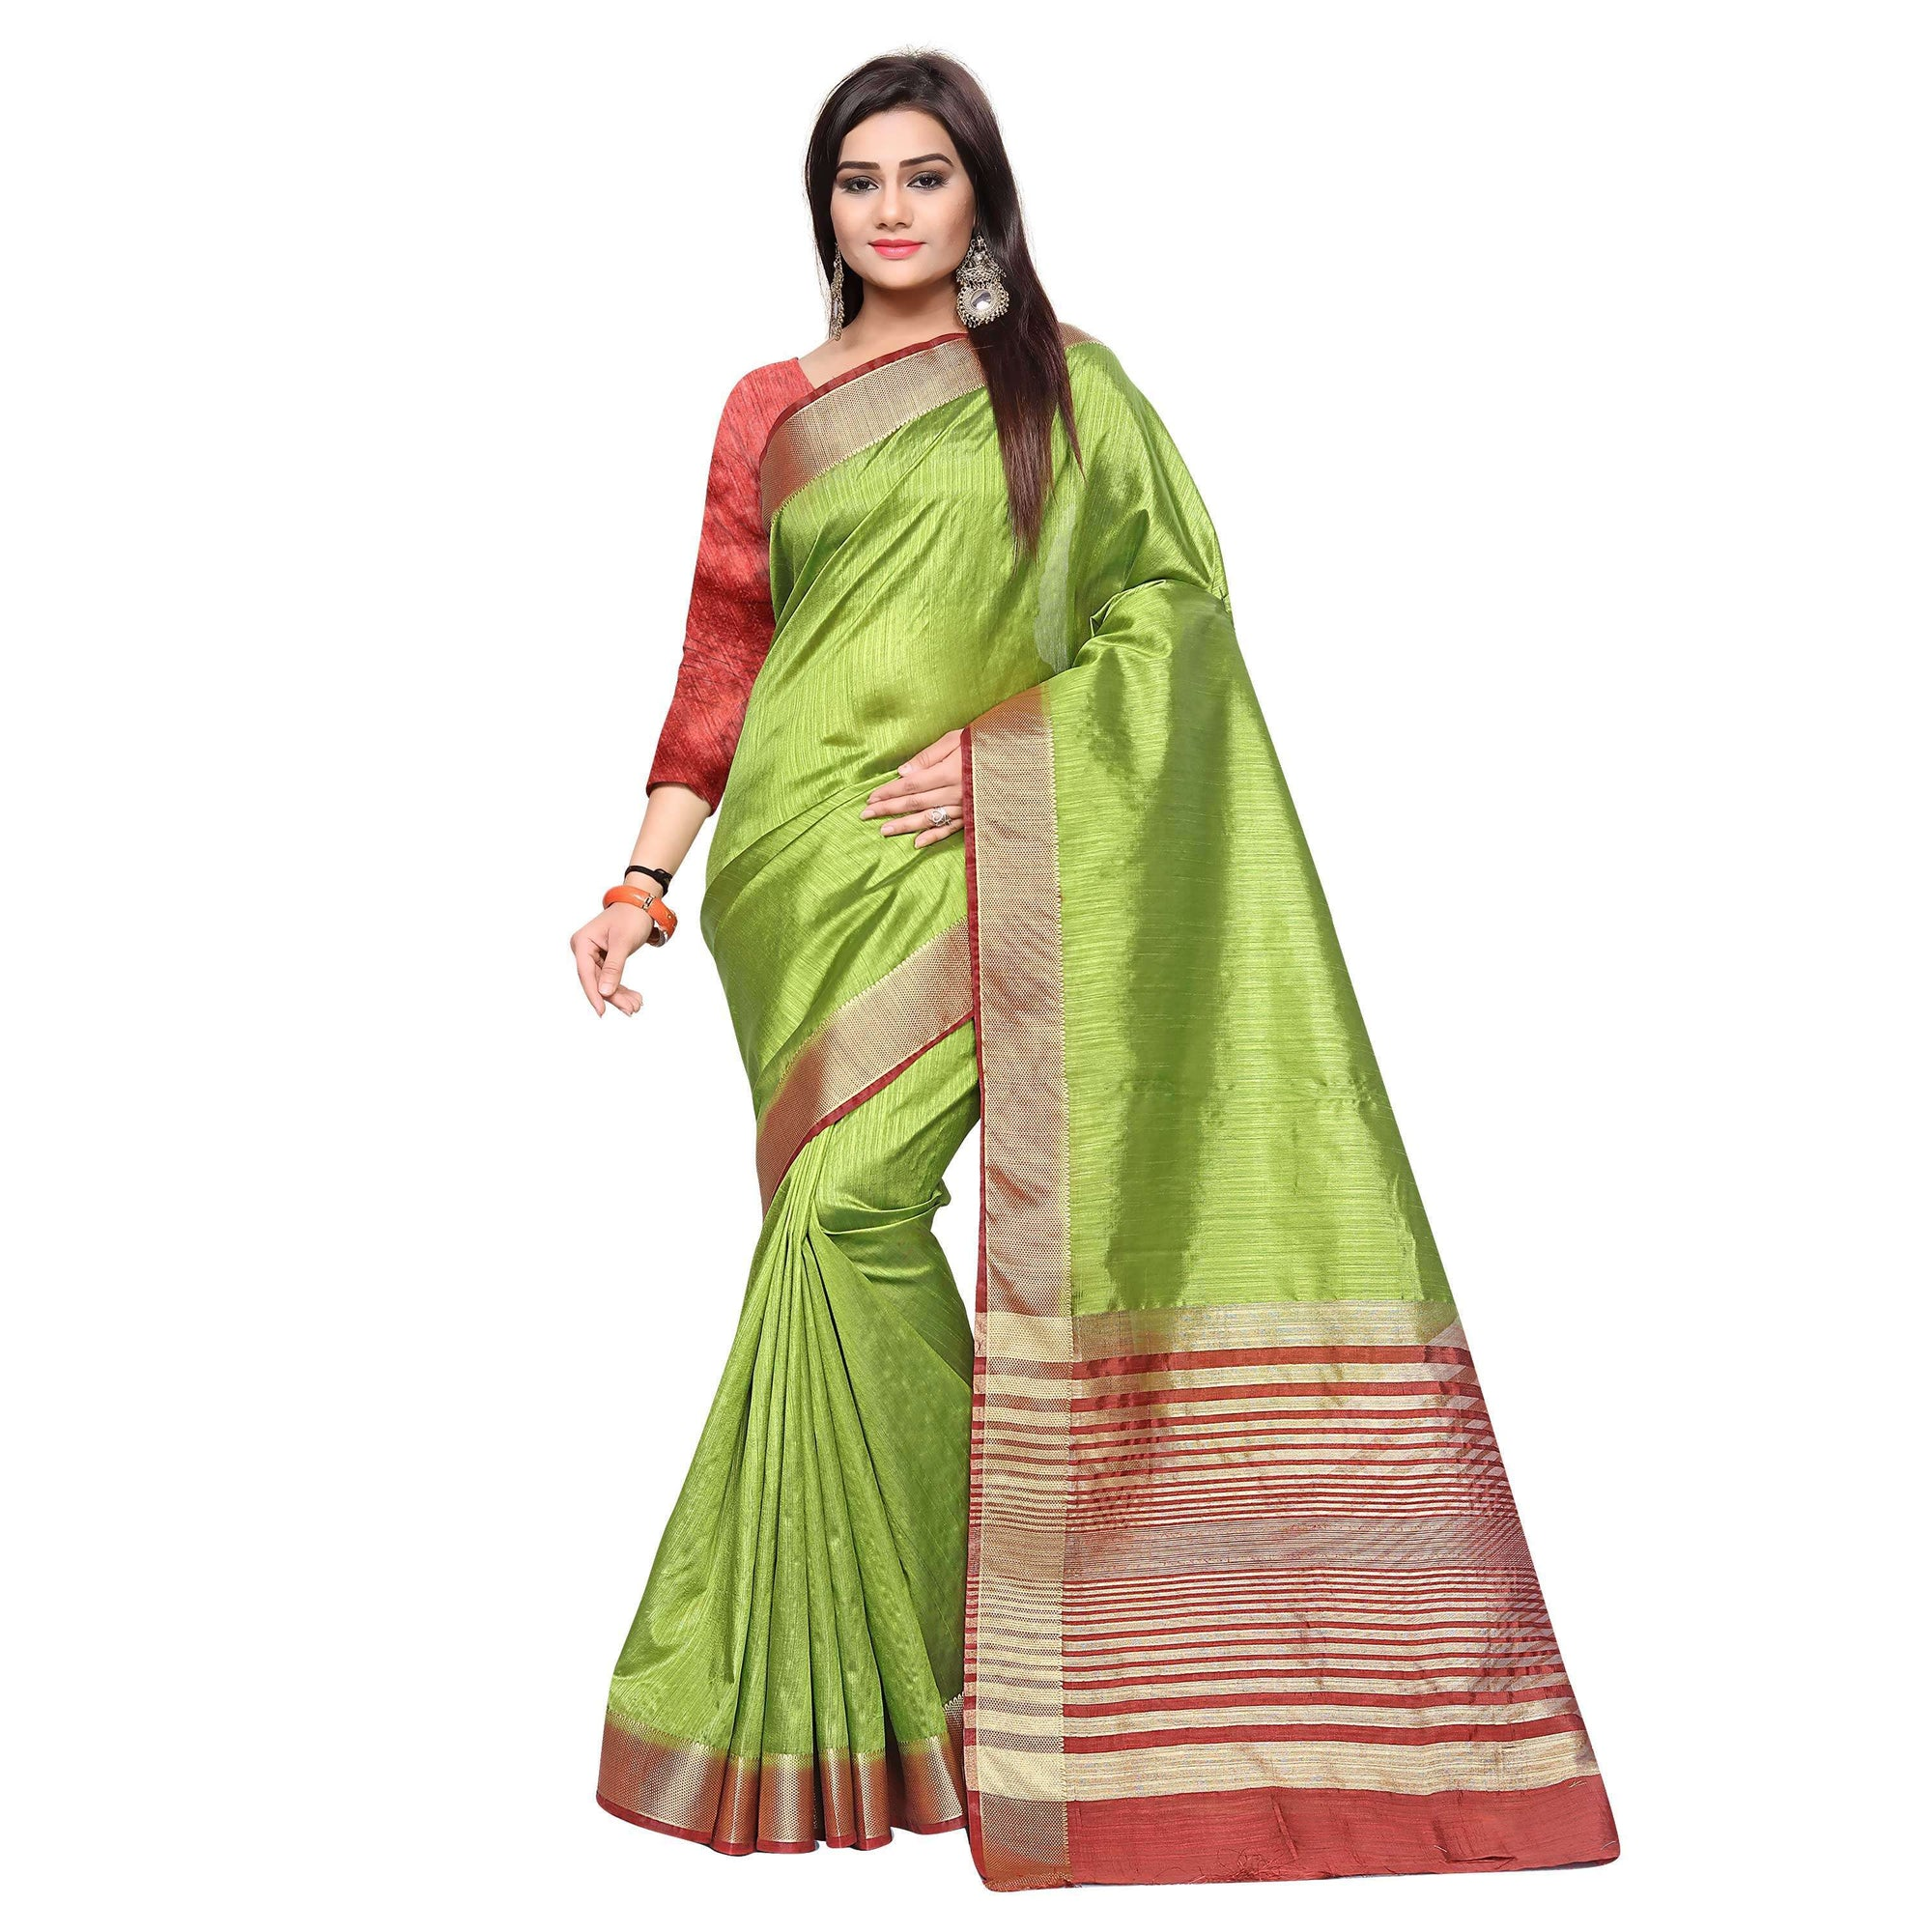 arars kanjivaram art silk saree with blouse saree colour olive (330)